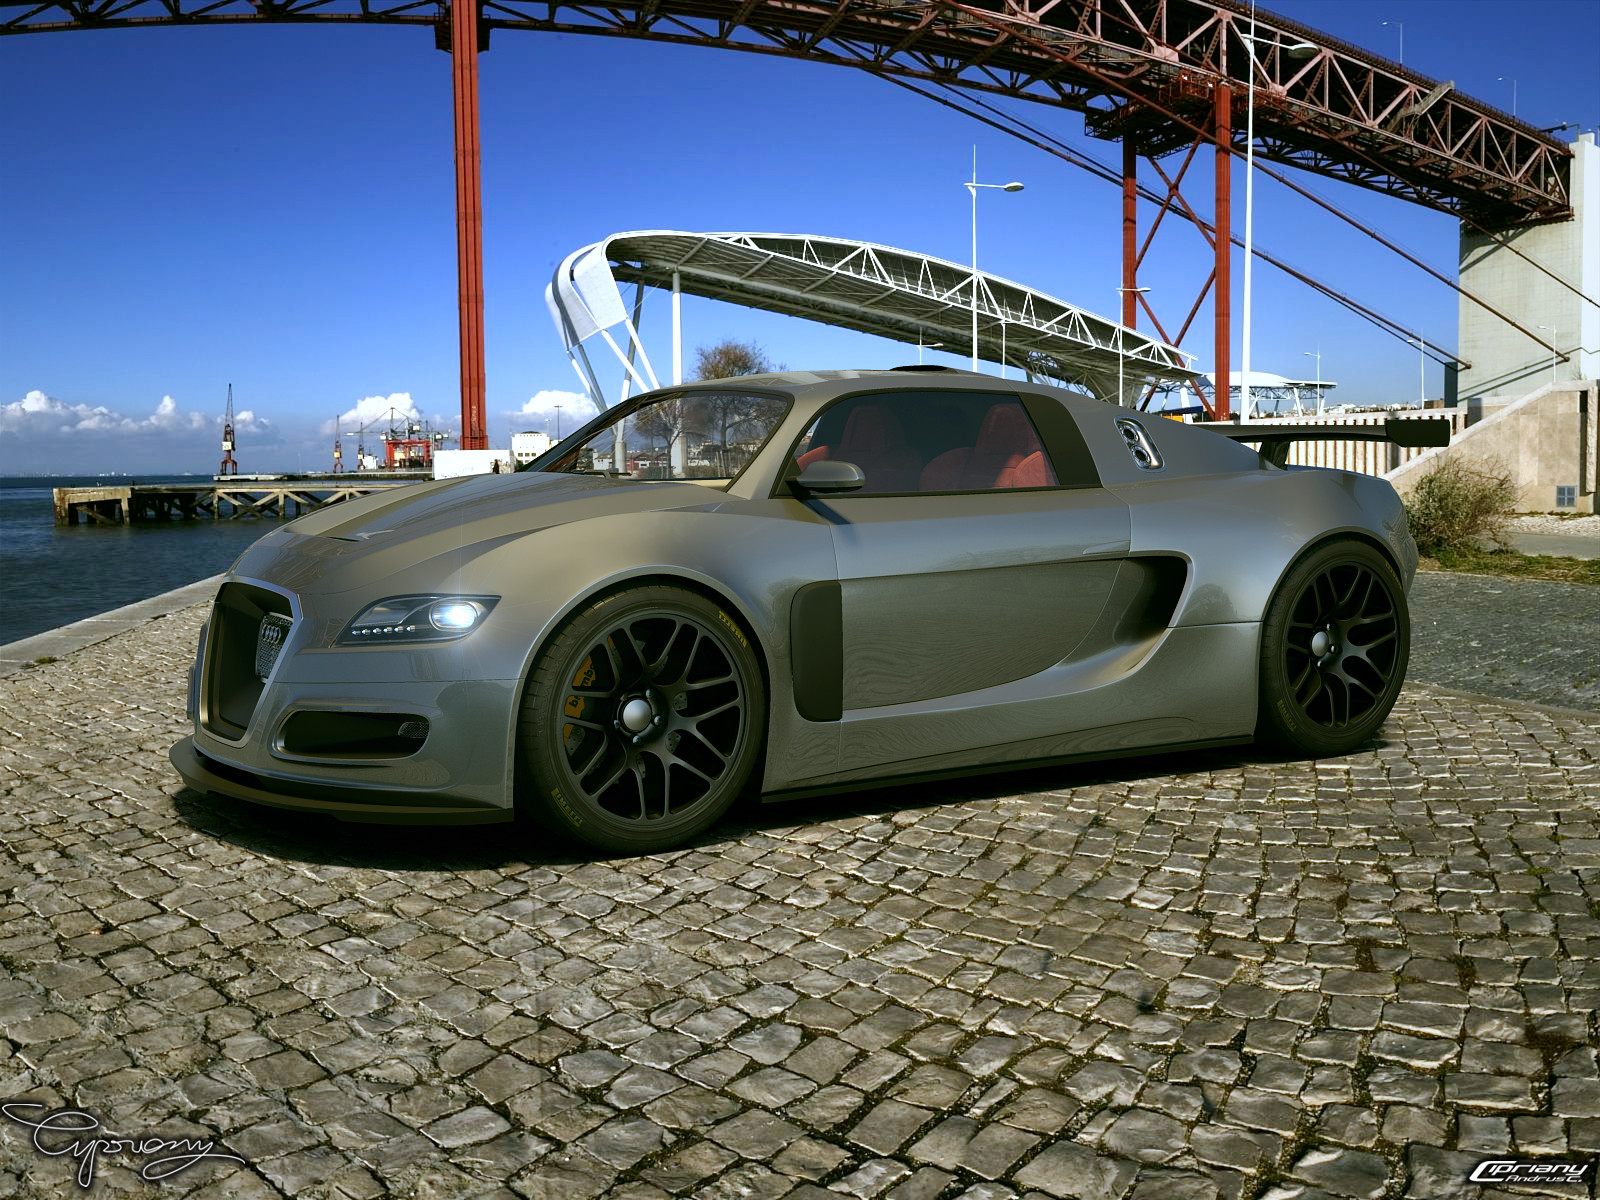 Audi OniX Concept v2-6 by cipriany